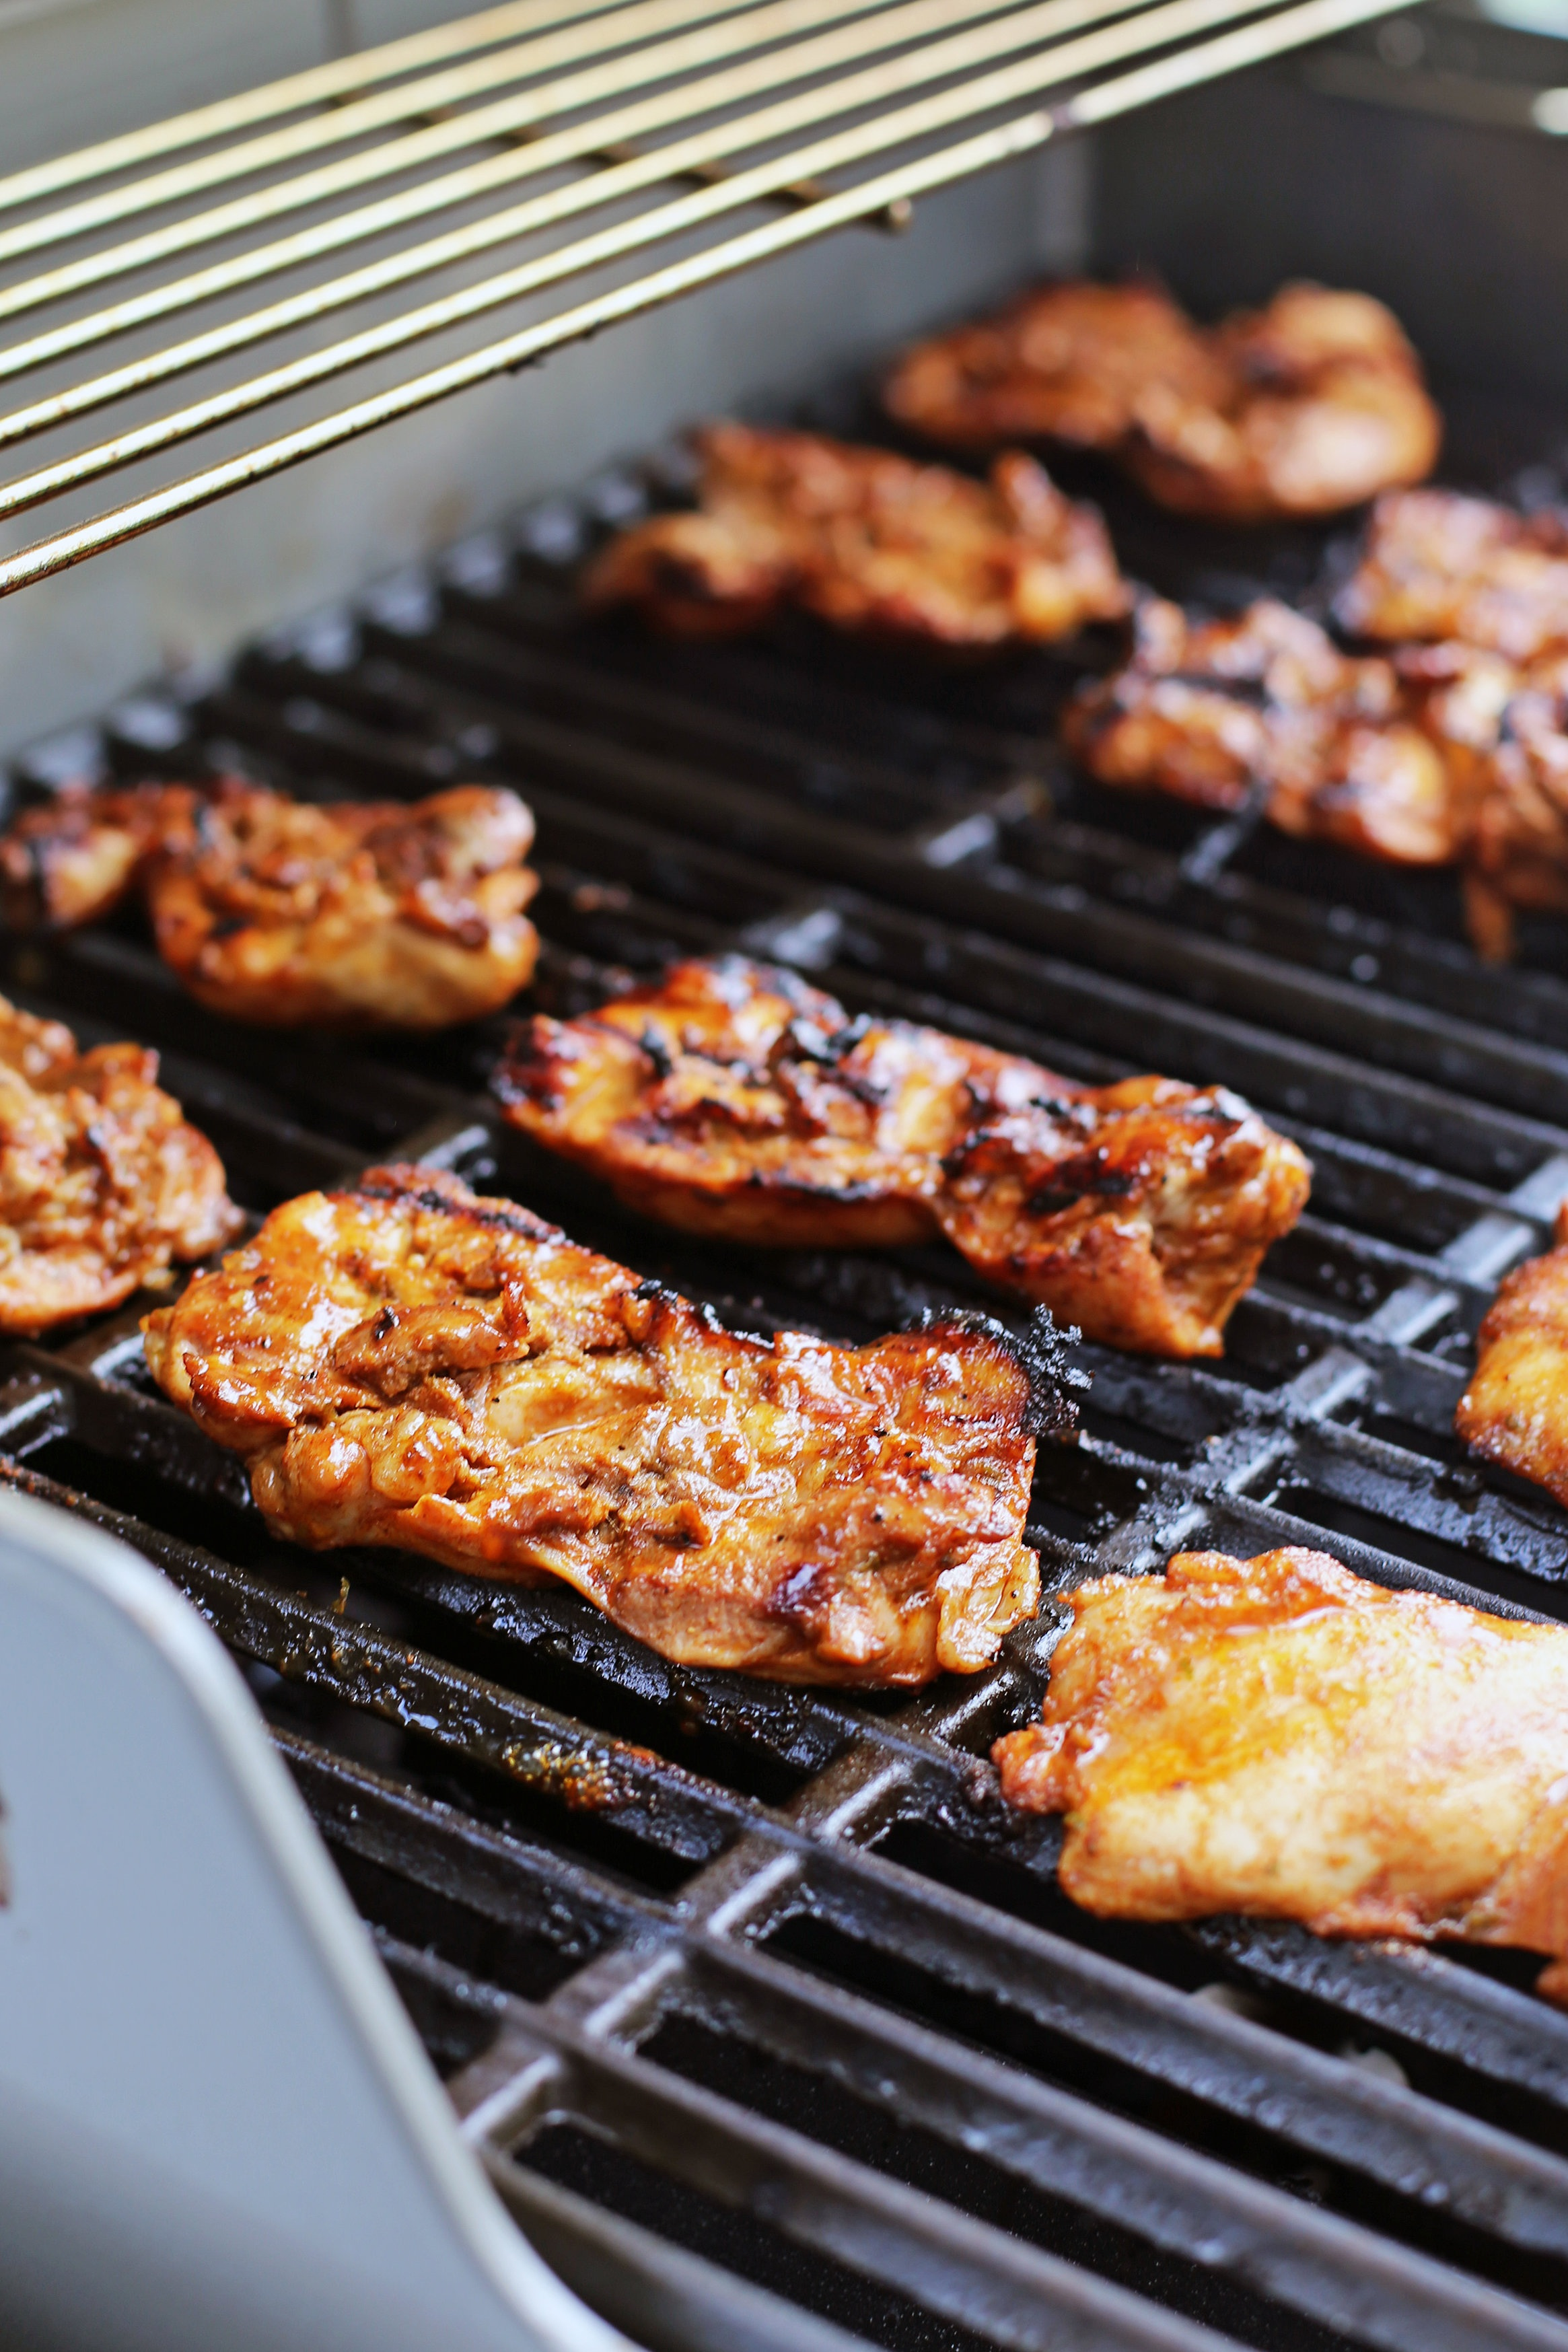 Chili lime chicken thighs cooking on a hot barbecue grill.